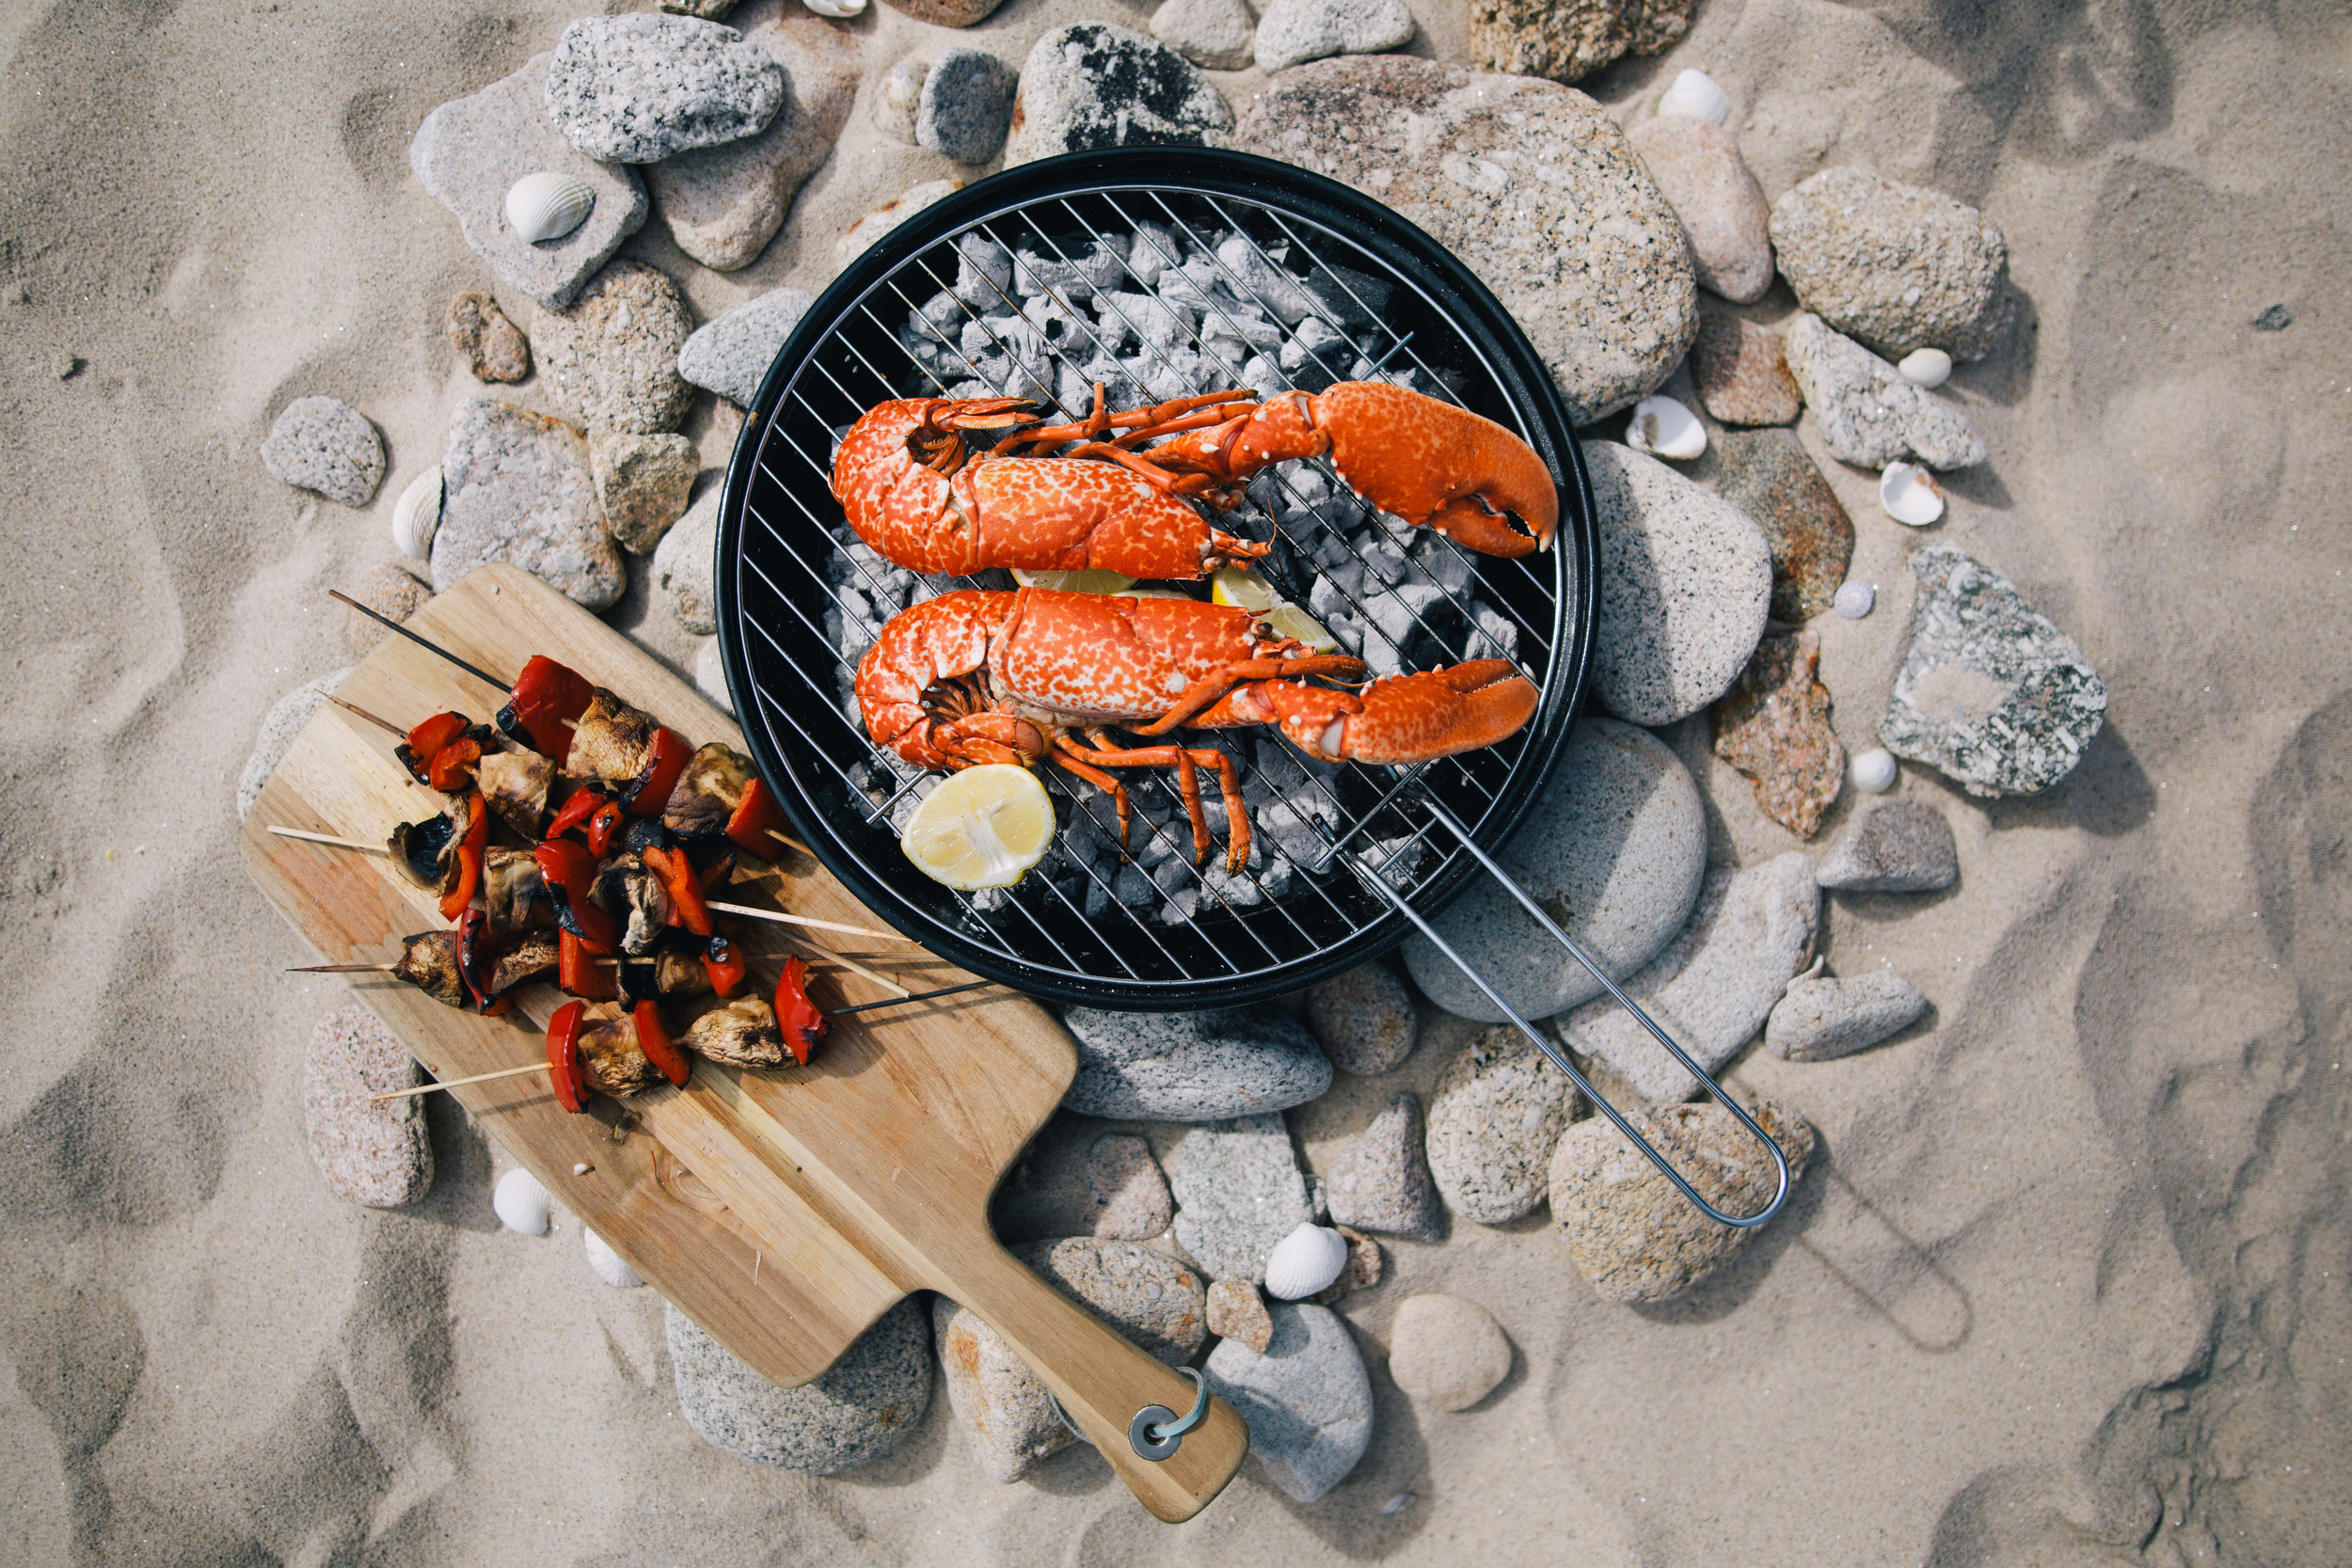 A sizzling seafood BBQ on Scilly - nothing better! Images courtesy of Visit Isles of Scilly.